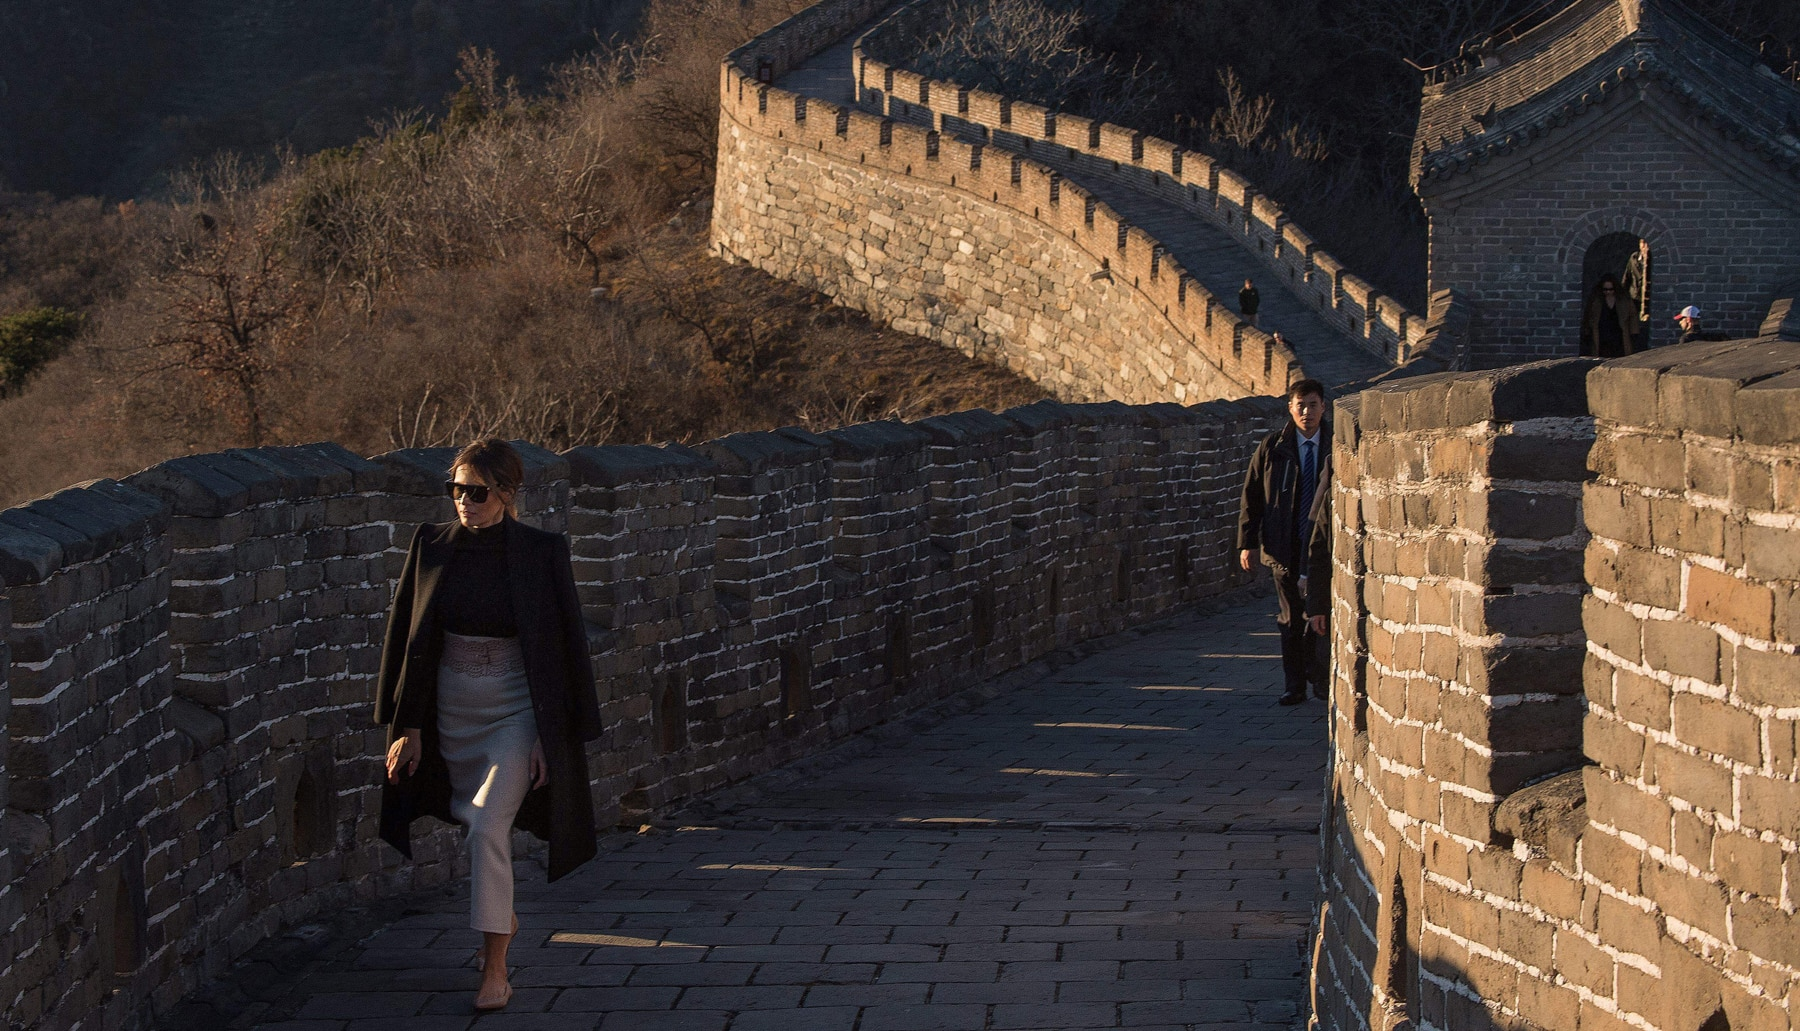 Melania Trump walking on the Great Wall of China (© Nicolas Asfouri/AFP/Getty Images)